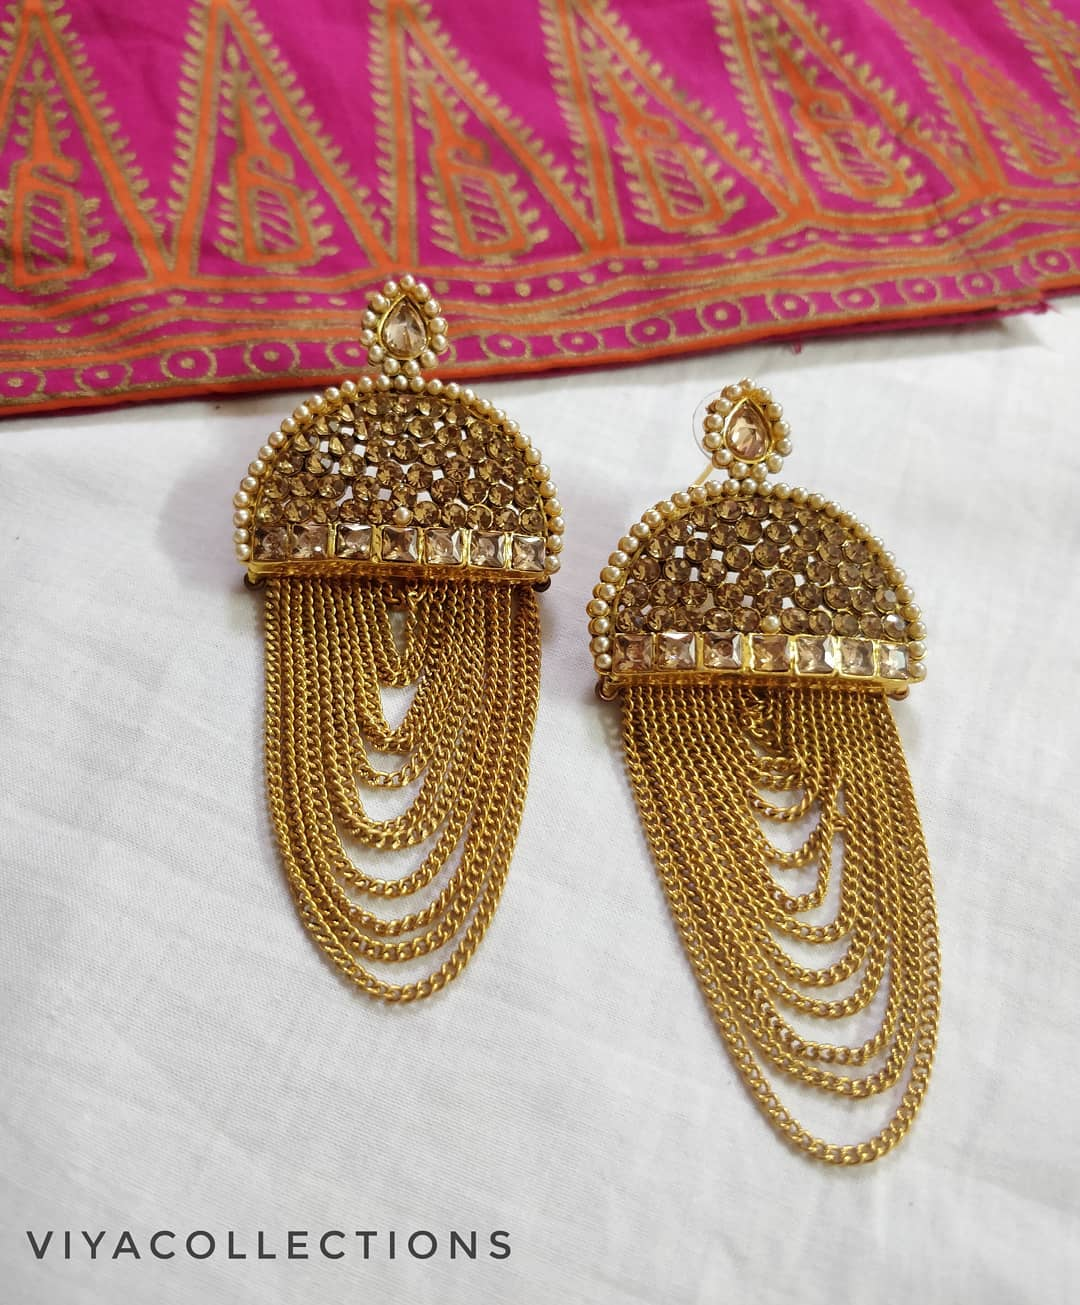 Unique Earring From Viya Collections